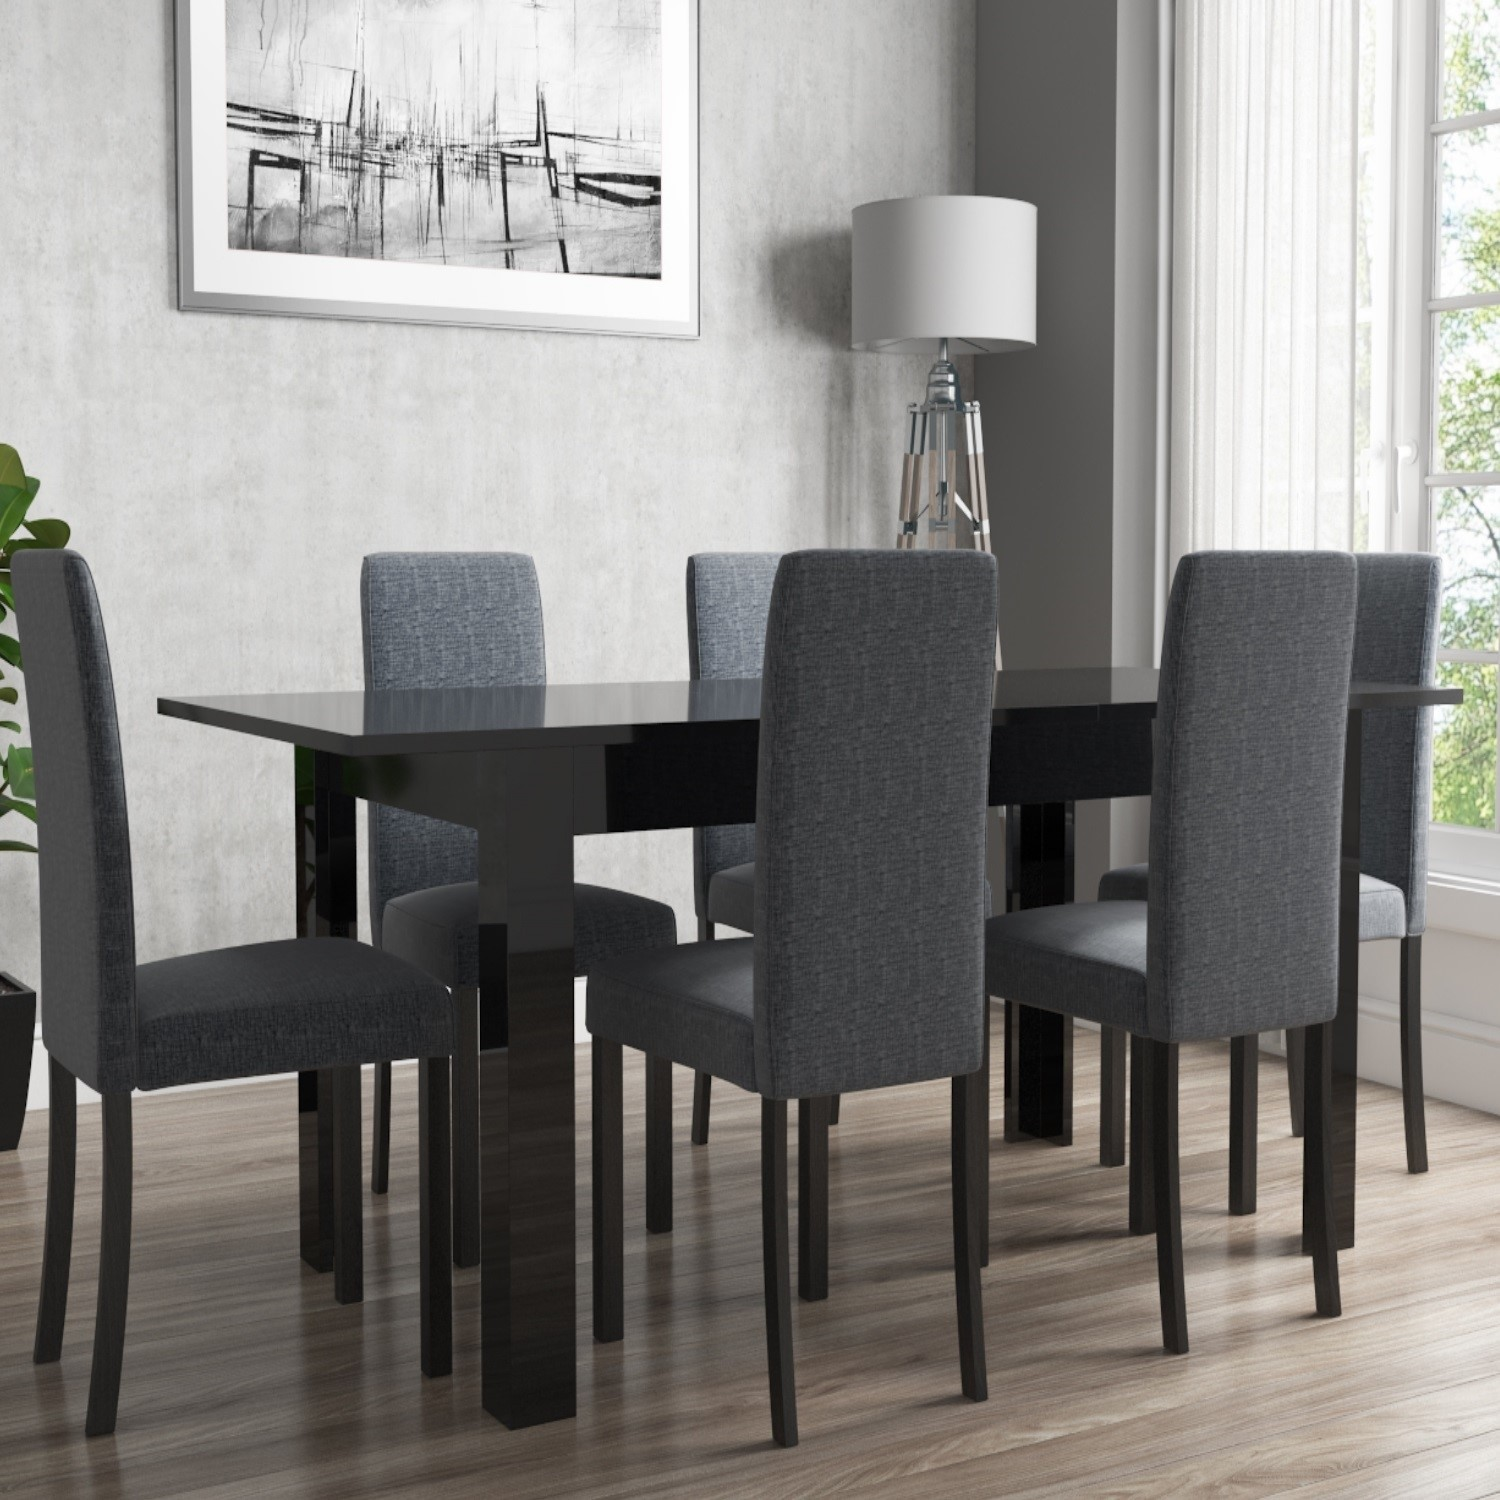 Grade A1 Vivienne Extending Black High Gloss Dining Table Furniture123